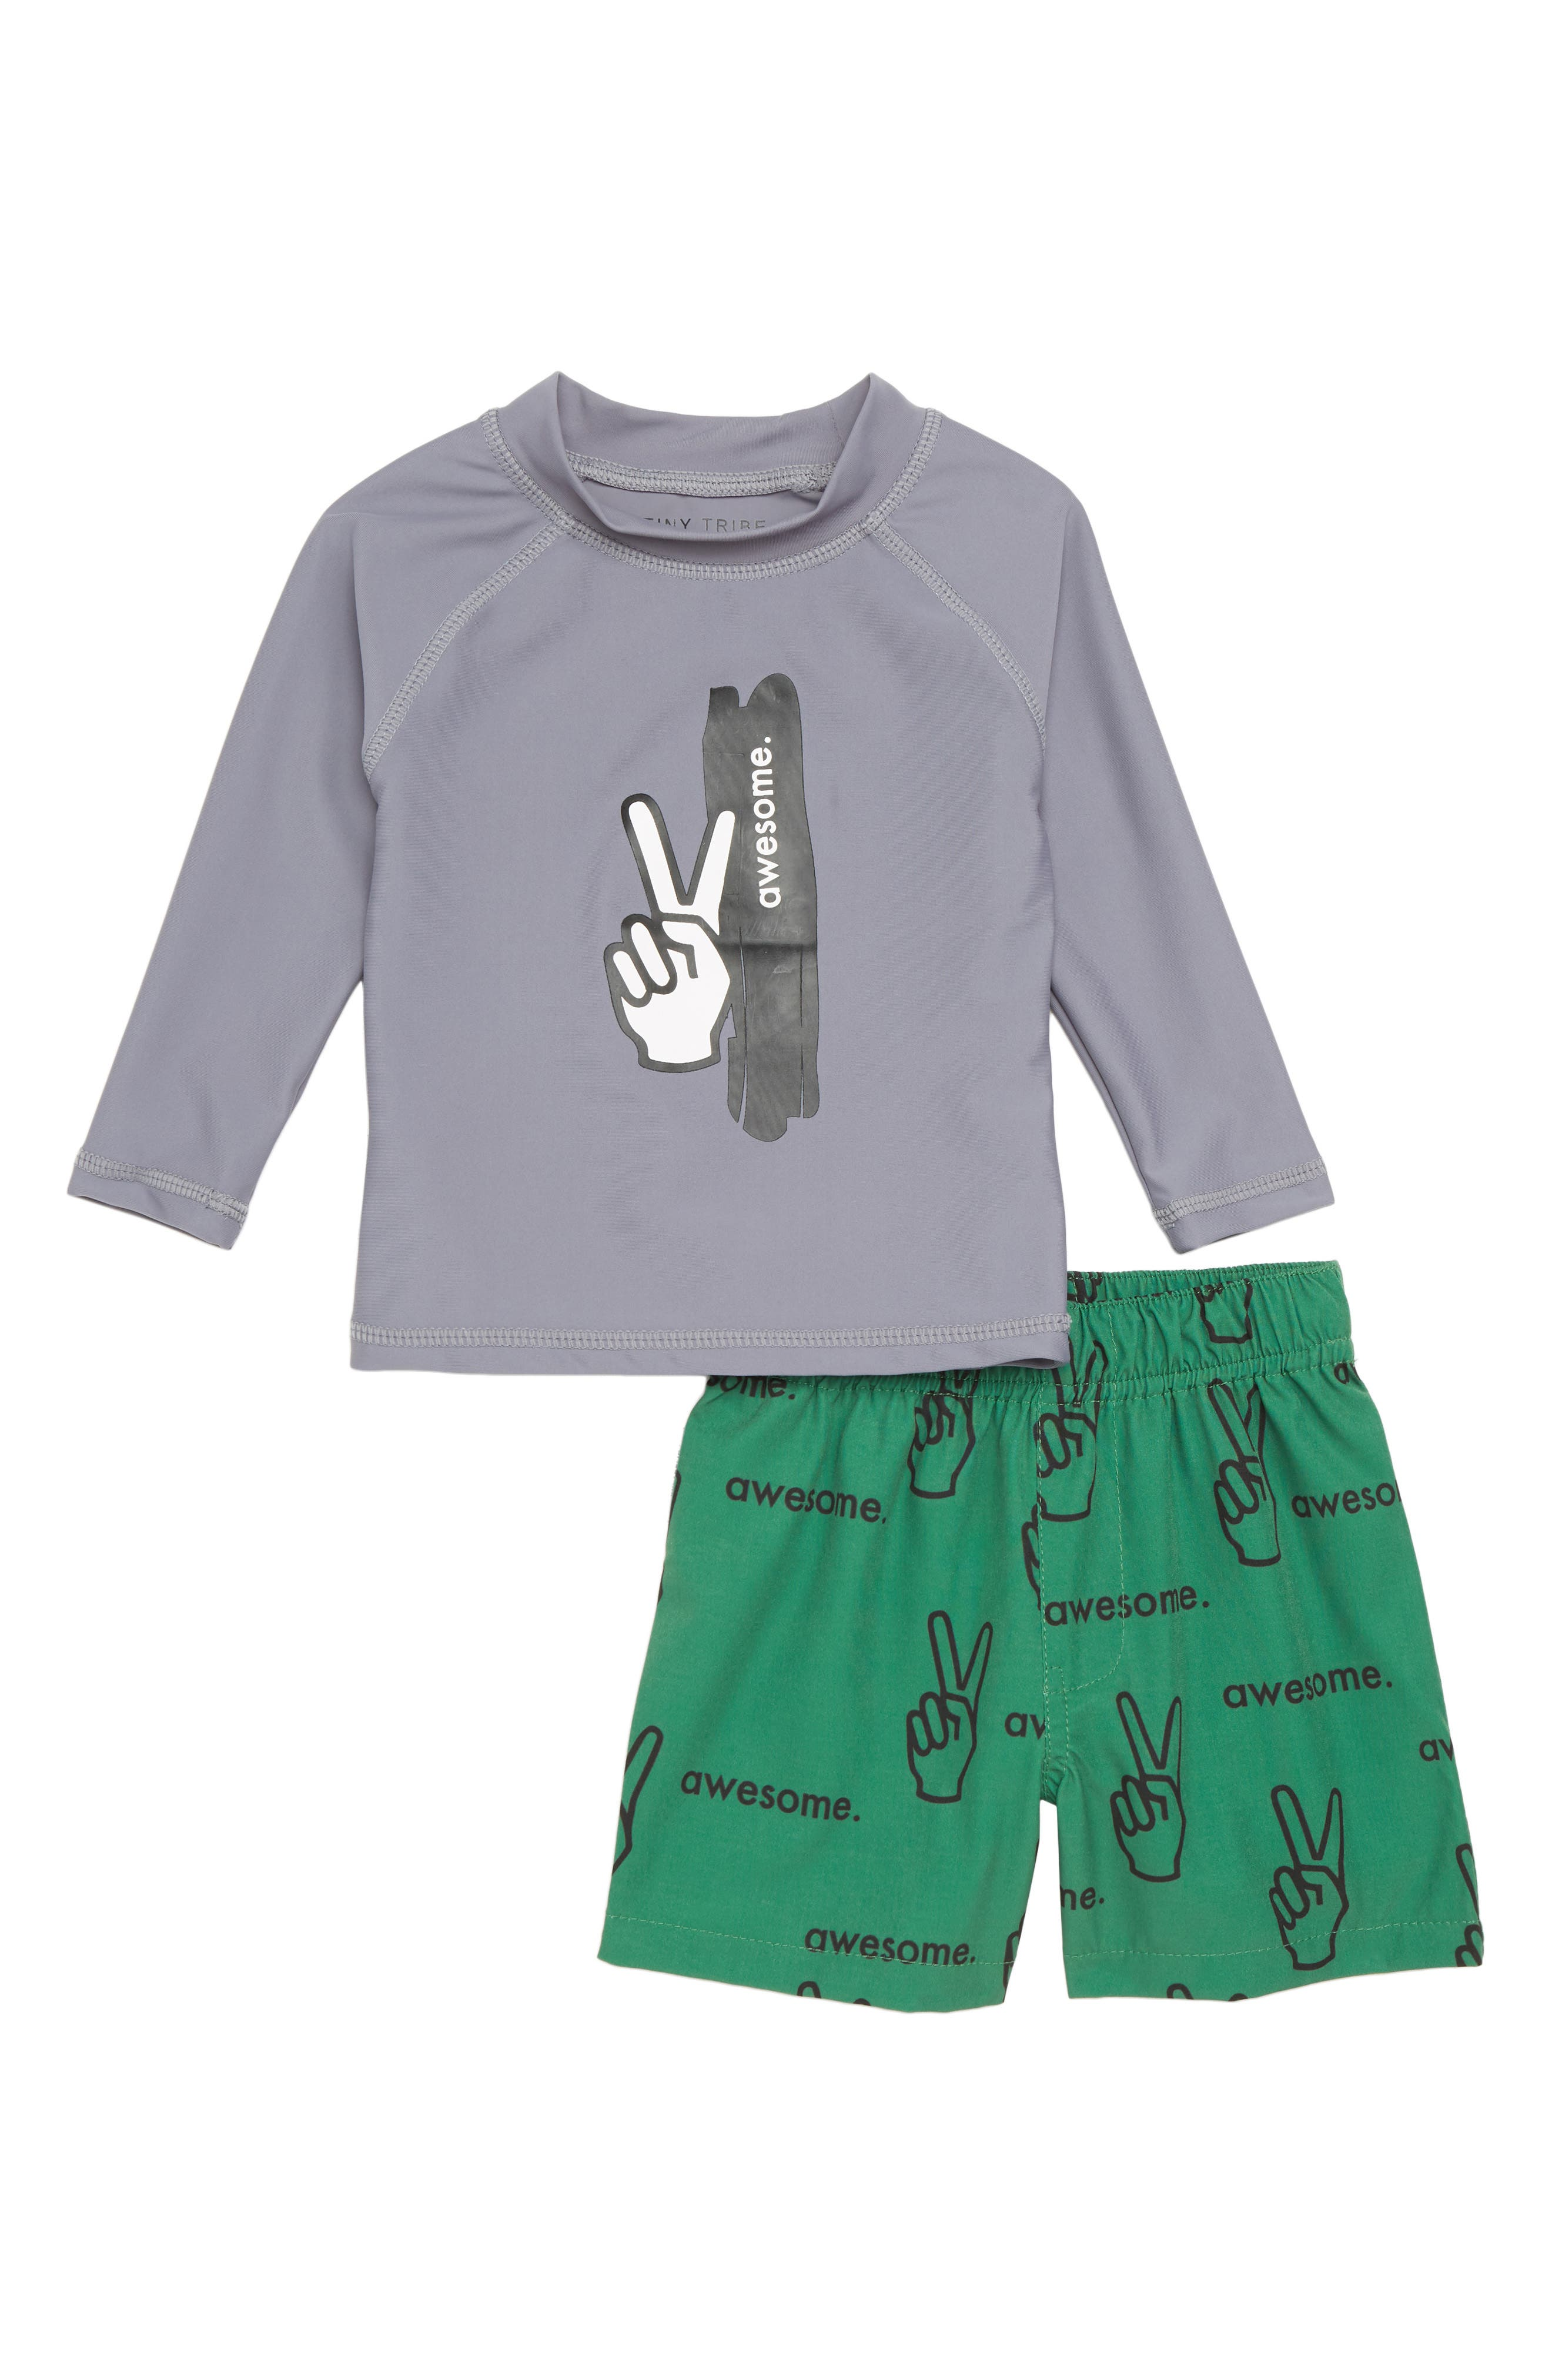 Boys are Awesome Two-Piece Rashguard Swimsuit,                         Main,                         color, Grey/ Green